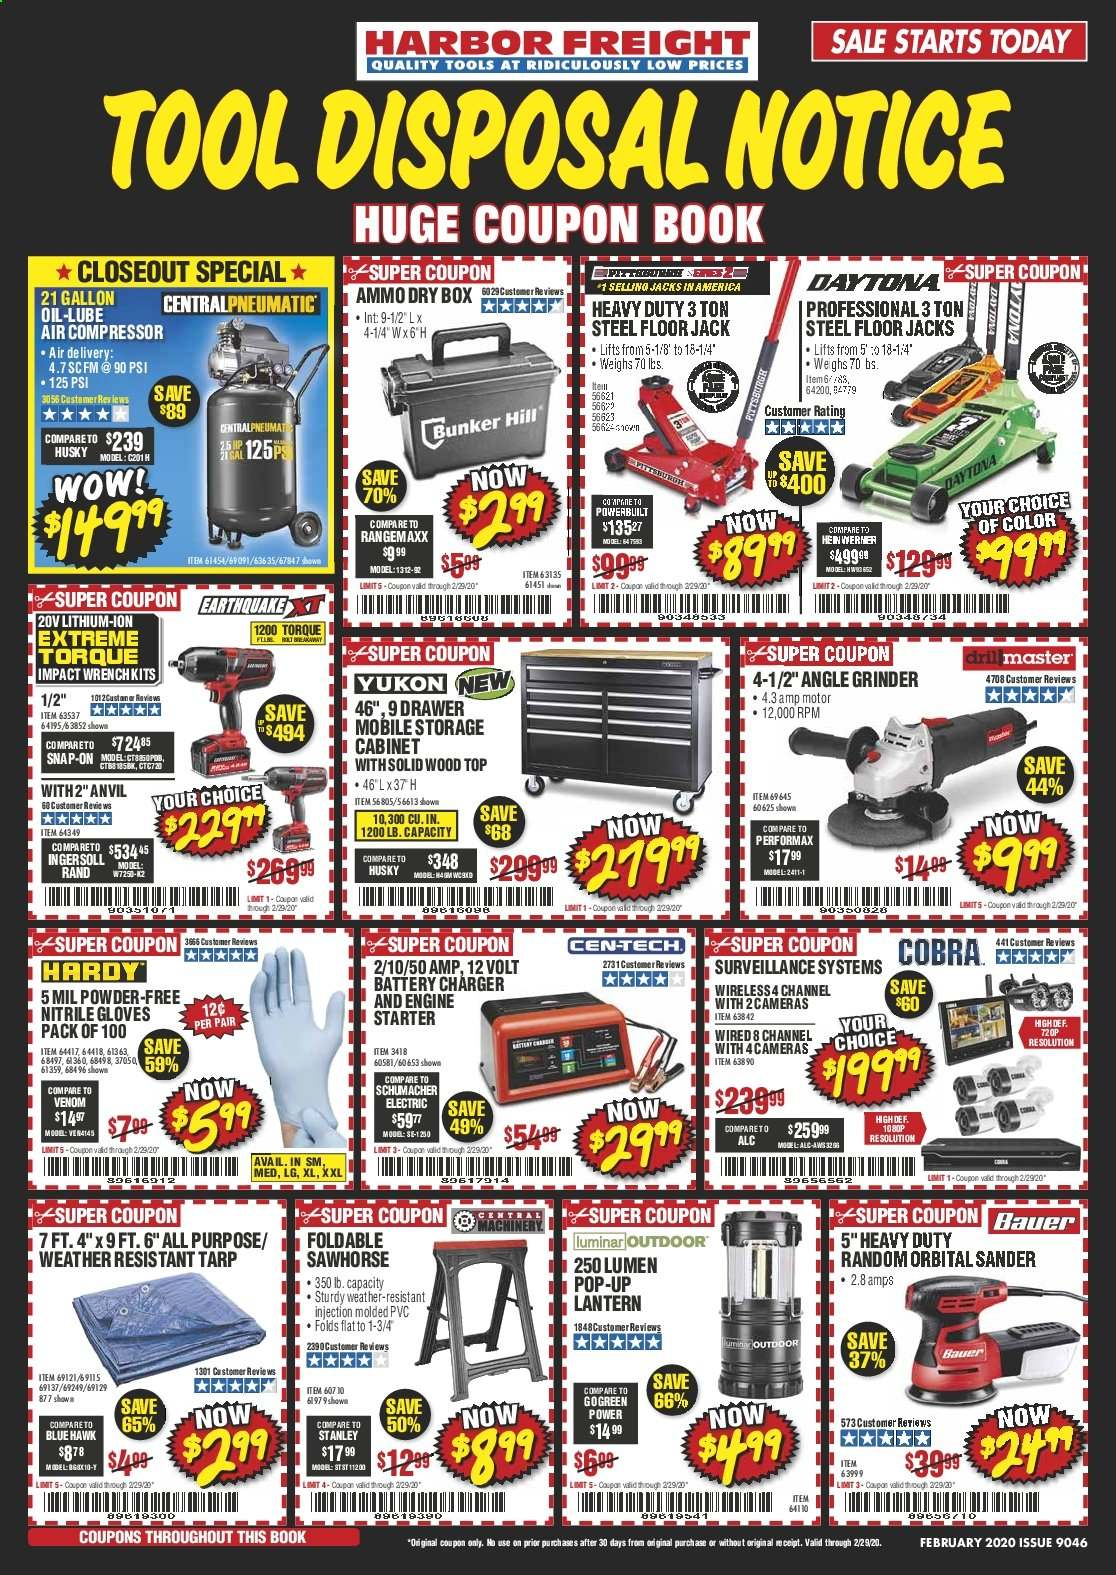 Harbor Freight Flyer  - 02.01.2020 - 02.29.2020. Page 1.